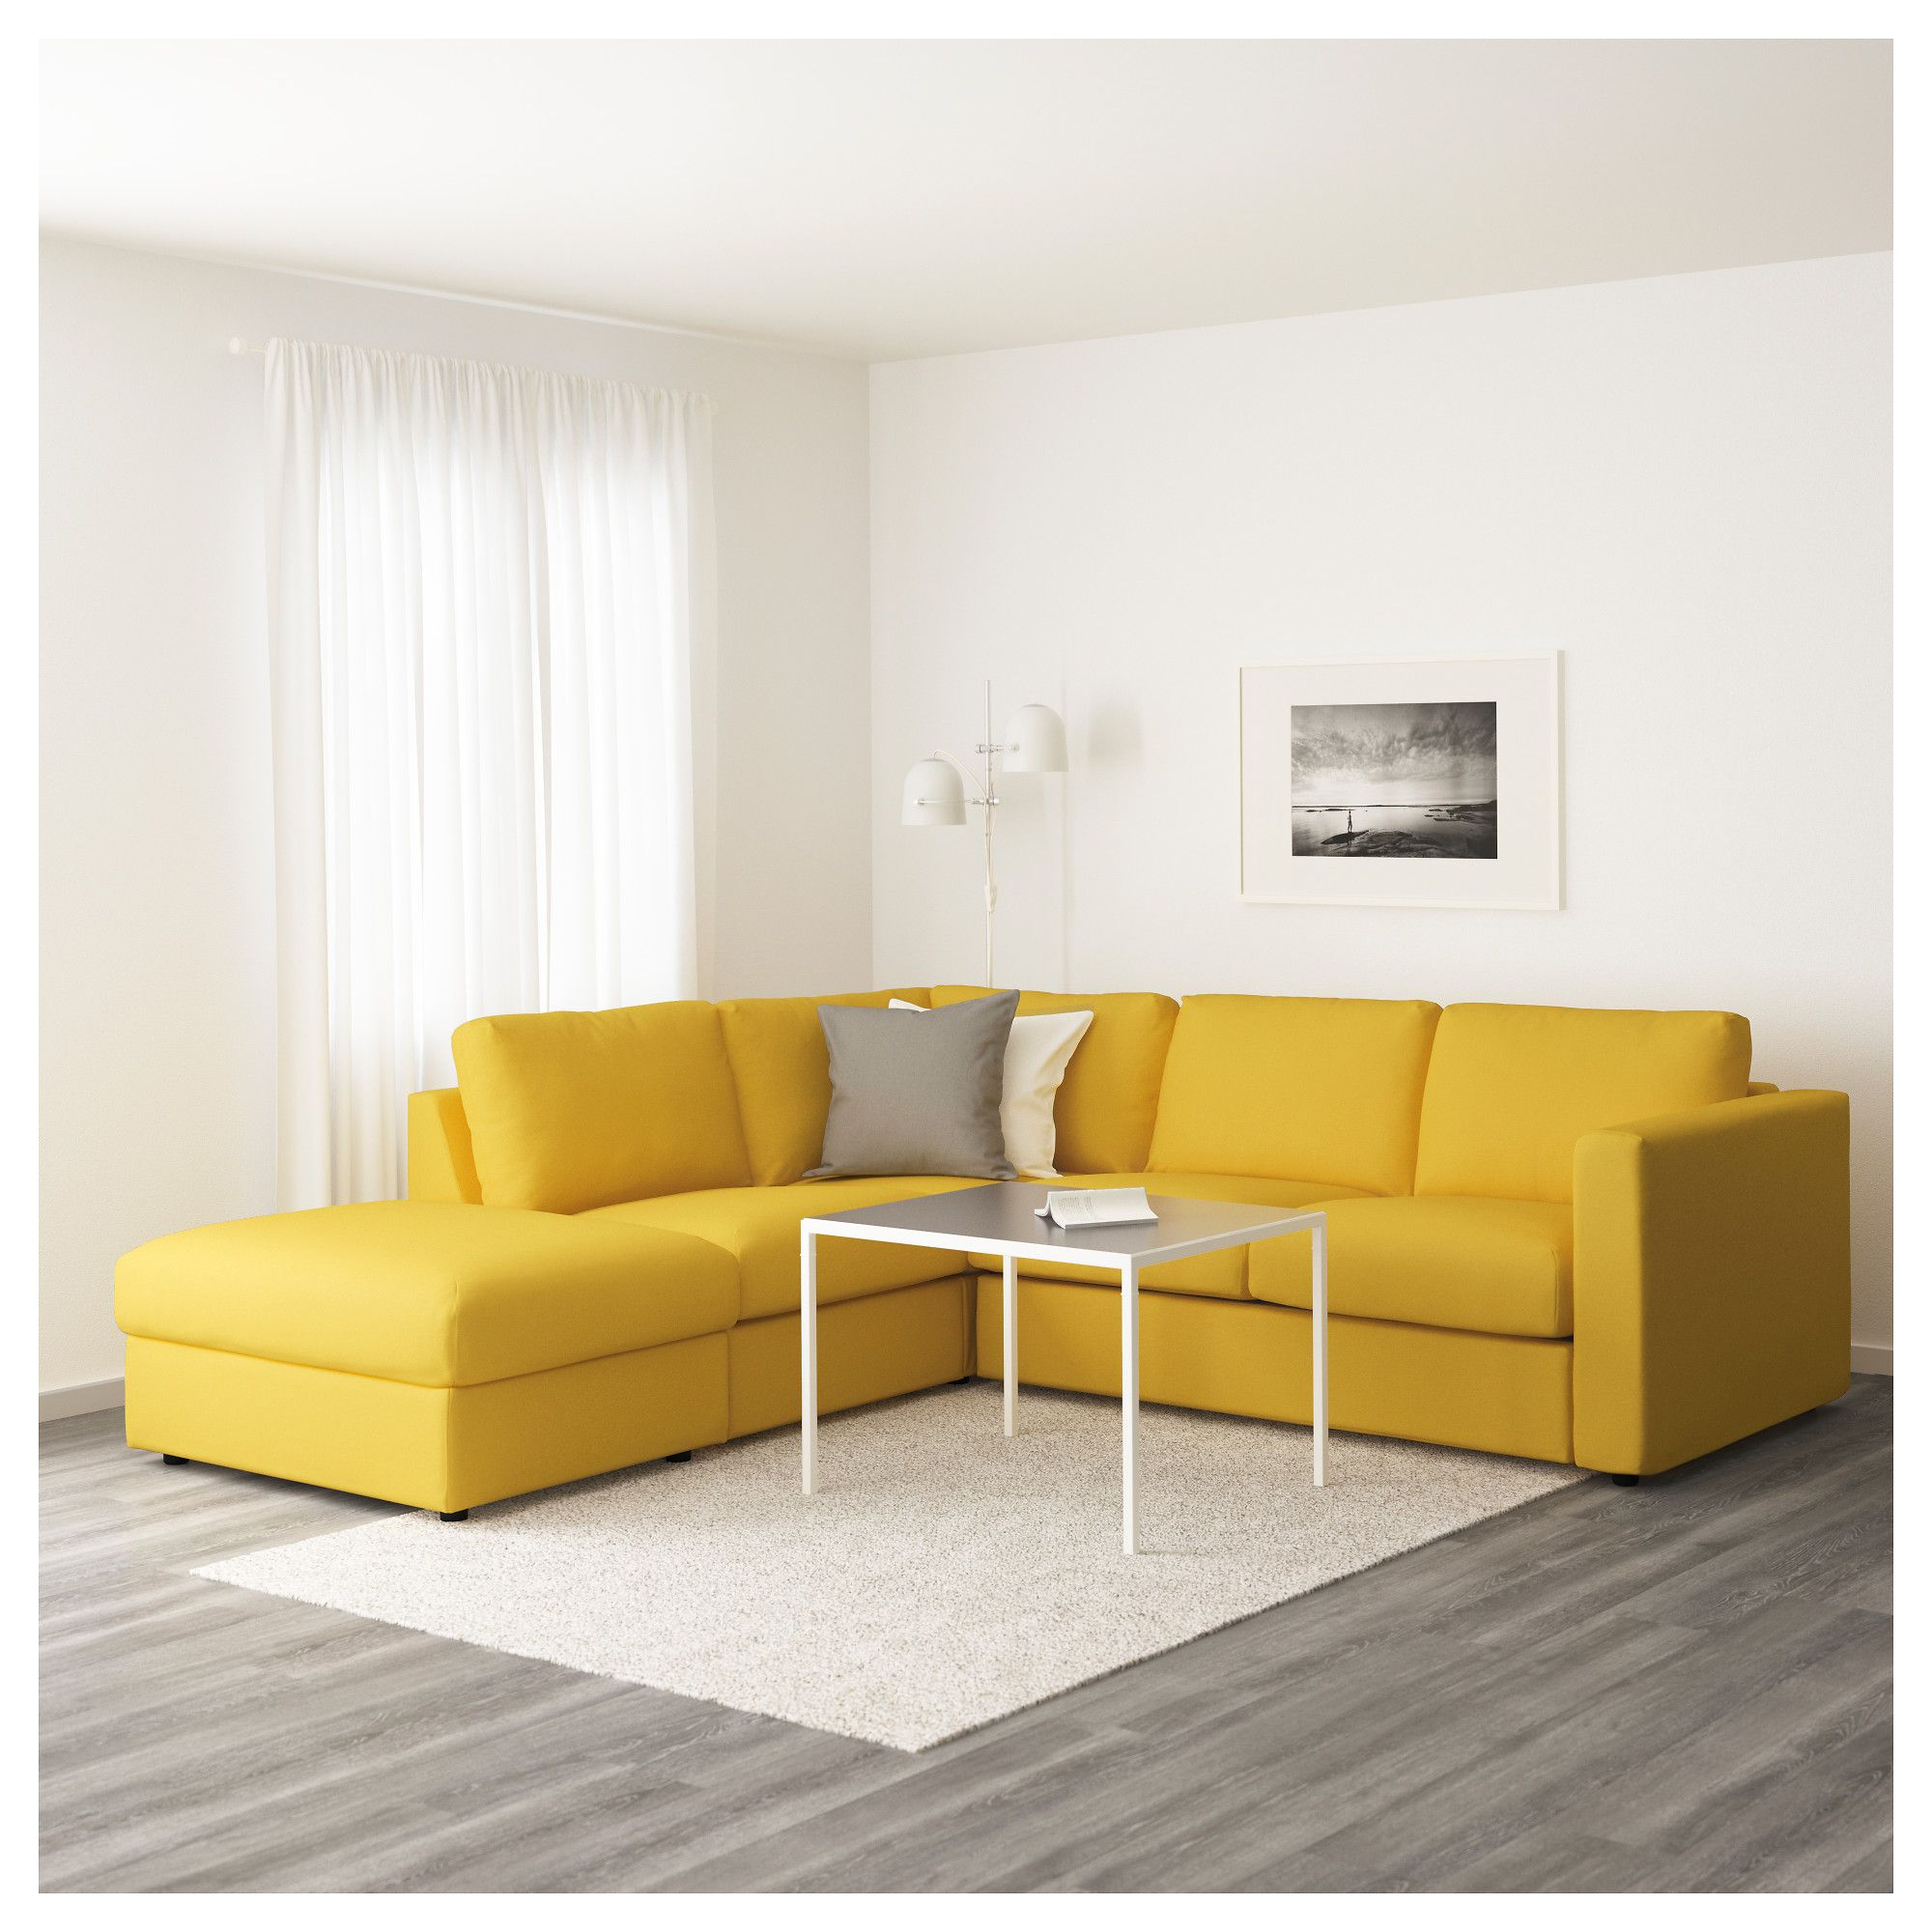 Furniture Home Furnishings Find Your Inspiration Living Room Sofa Ikea Living Room Living Room Decor